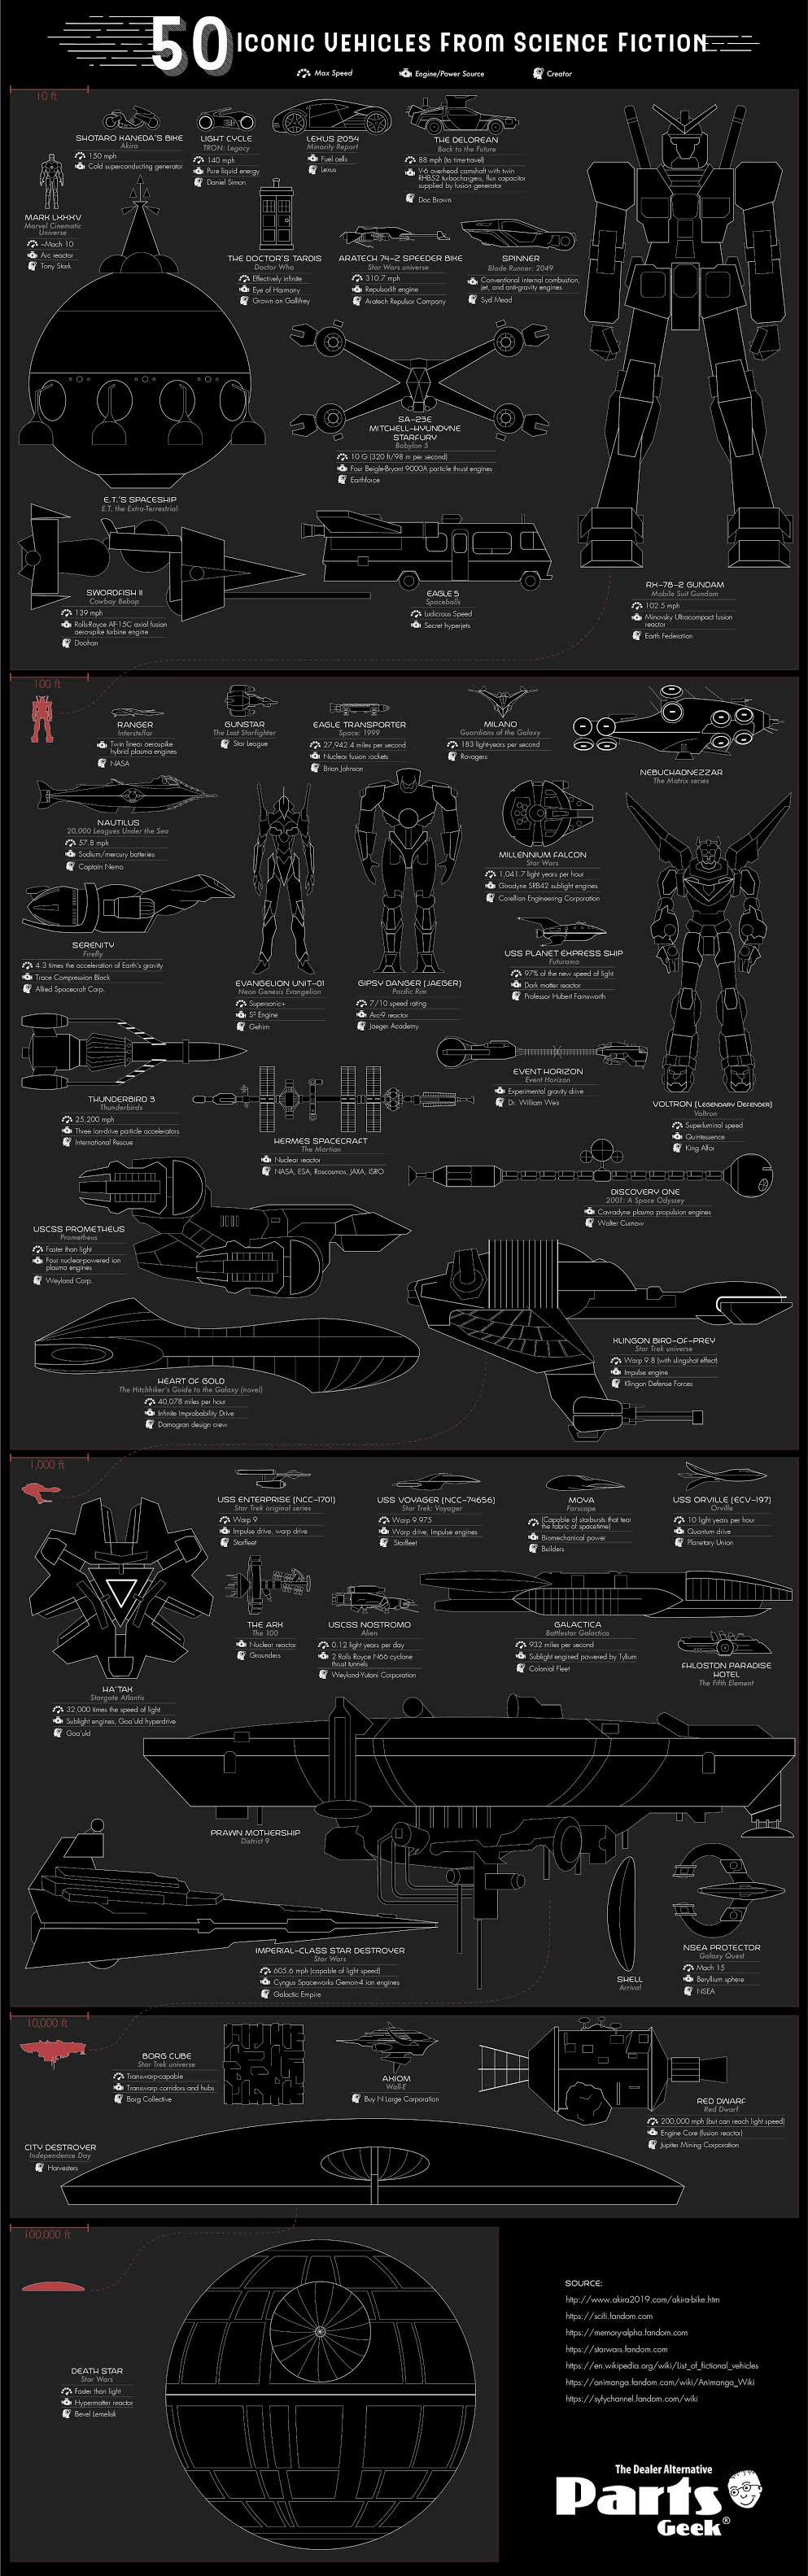 50 Iconic Vehicles From Science Fiction #infographic